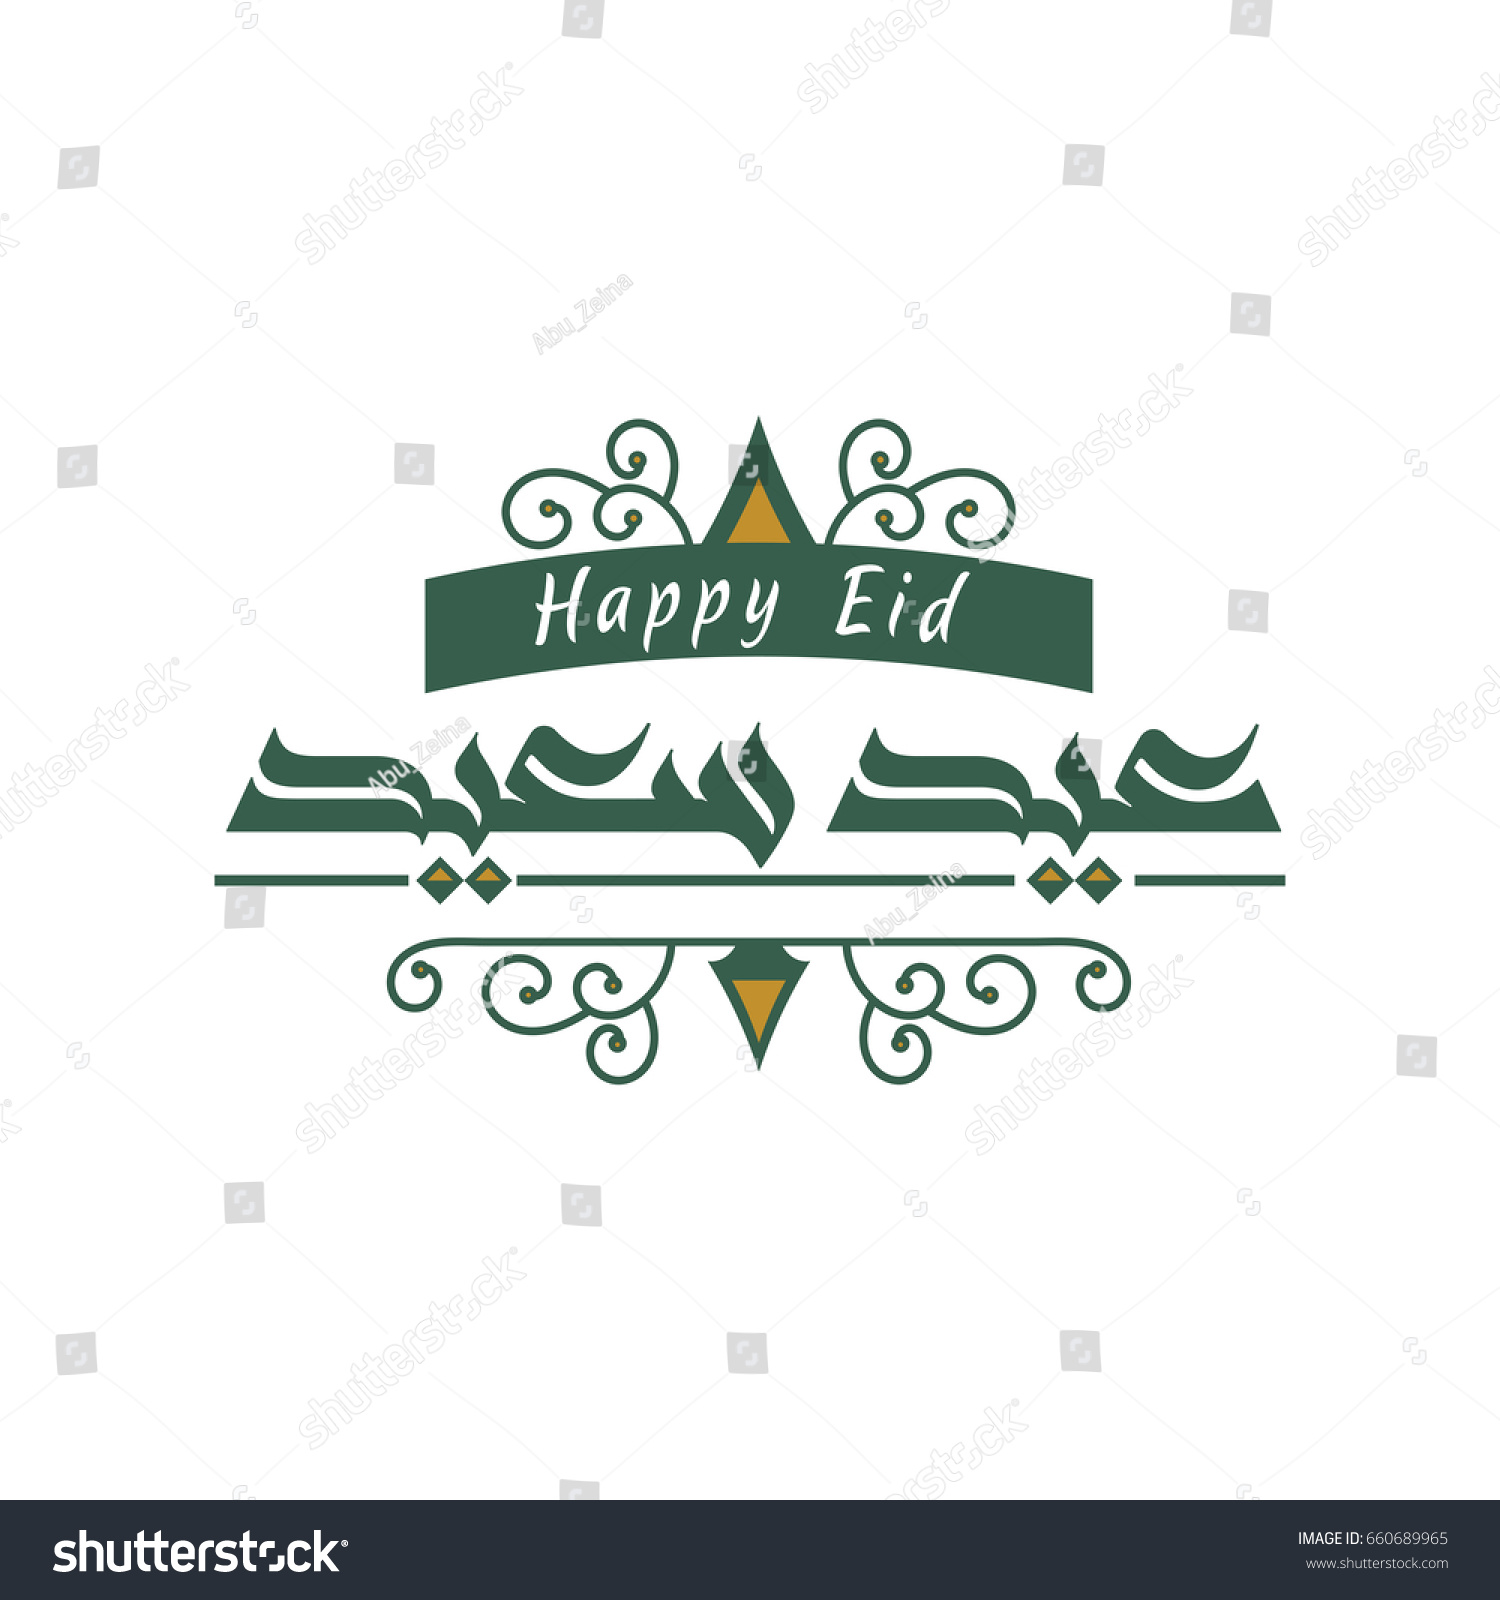 Creative arabic calligraphy type eid greeting stock vector creative arabic calligraphy type eid greeting stock vector 660689965 shutterstock kristyandbryce Image collections